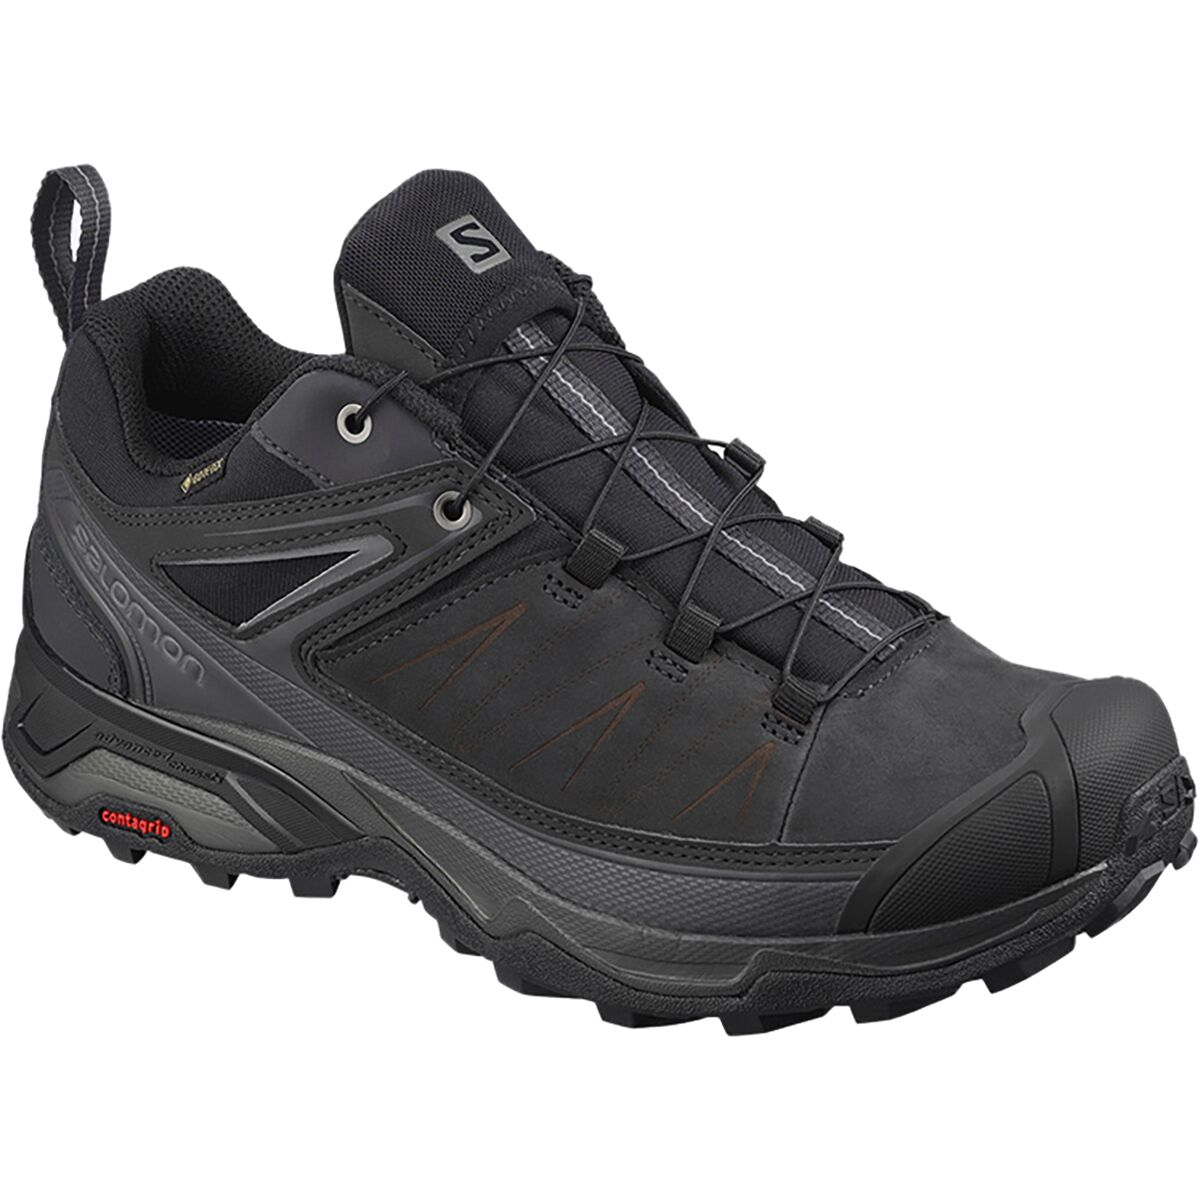 Salomon X Ultra 3 LTR GTX® | 6pm